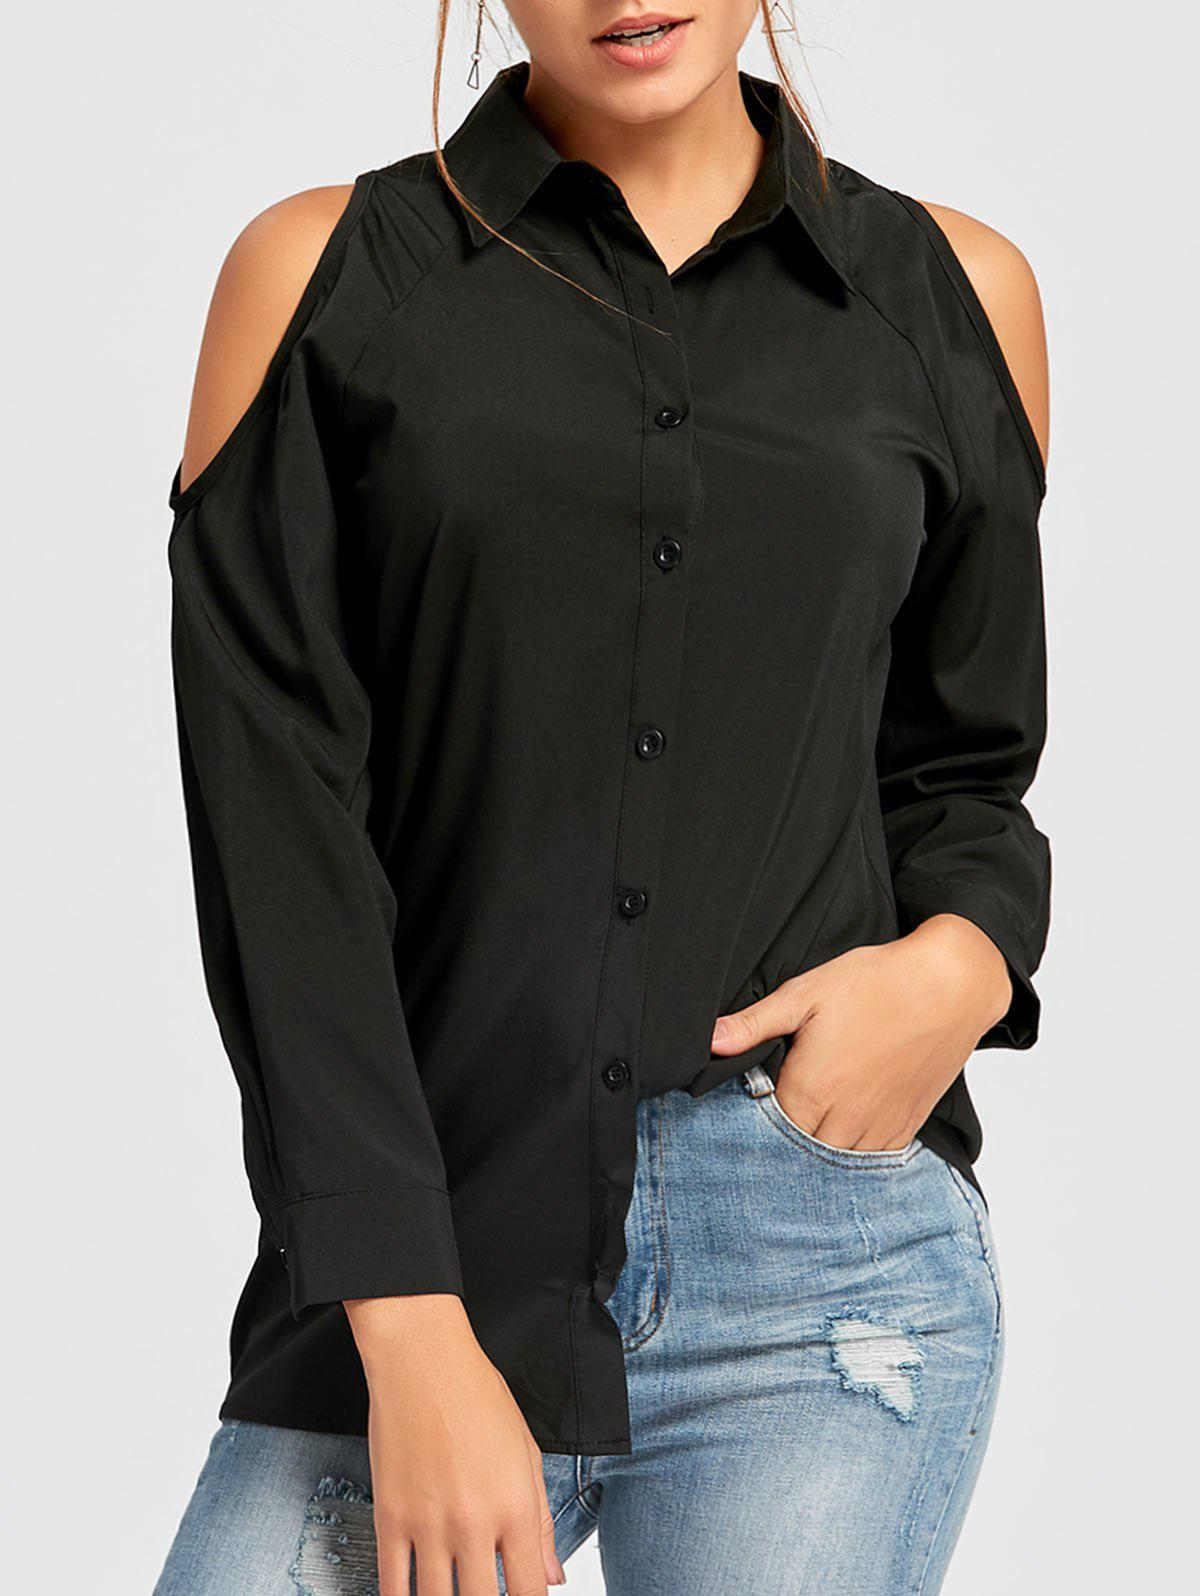 Button Down Cold Shoulder Tunic ShirtWOMEN<br><br>Size: XL; Color: BLACK; Style: Fashion; Material: Cotton,Polyester; Shirt Length: Regular; Sleeve Length: Full; Collar: Shirt Collar; Pattern Type: Solid; Season: Fall,Spring; Weight: 0.2500kg; Package Contents: 1 x Shirt;